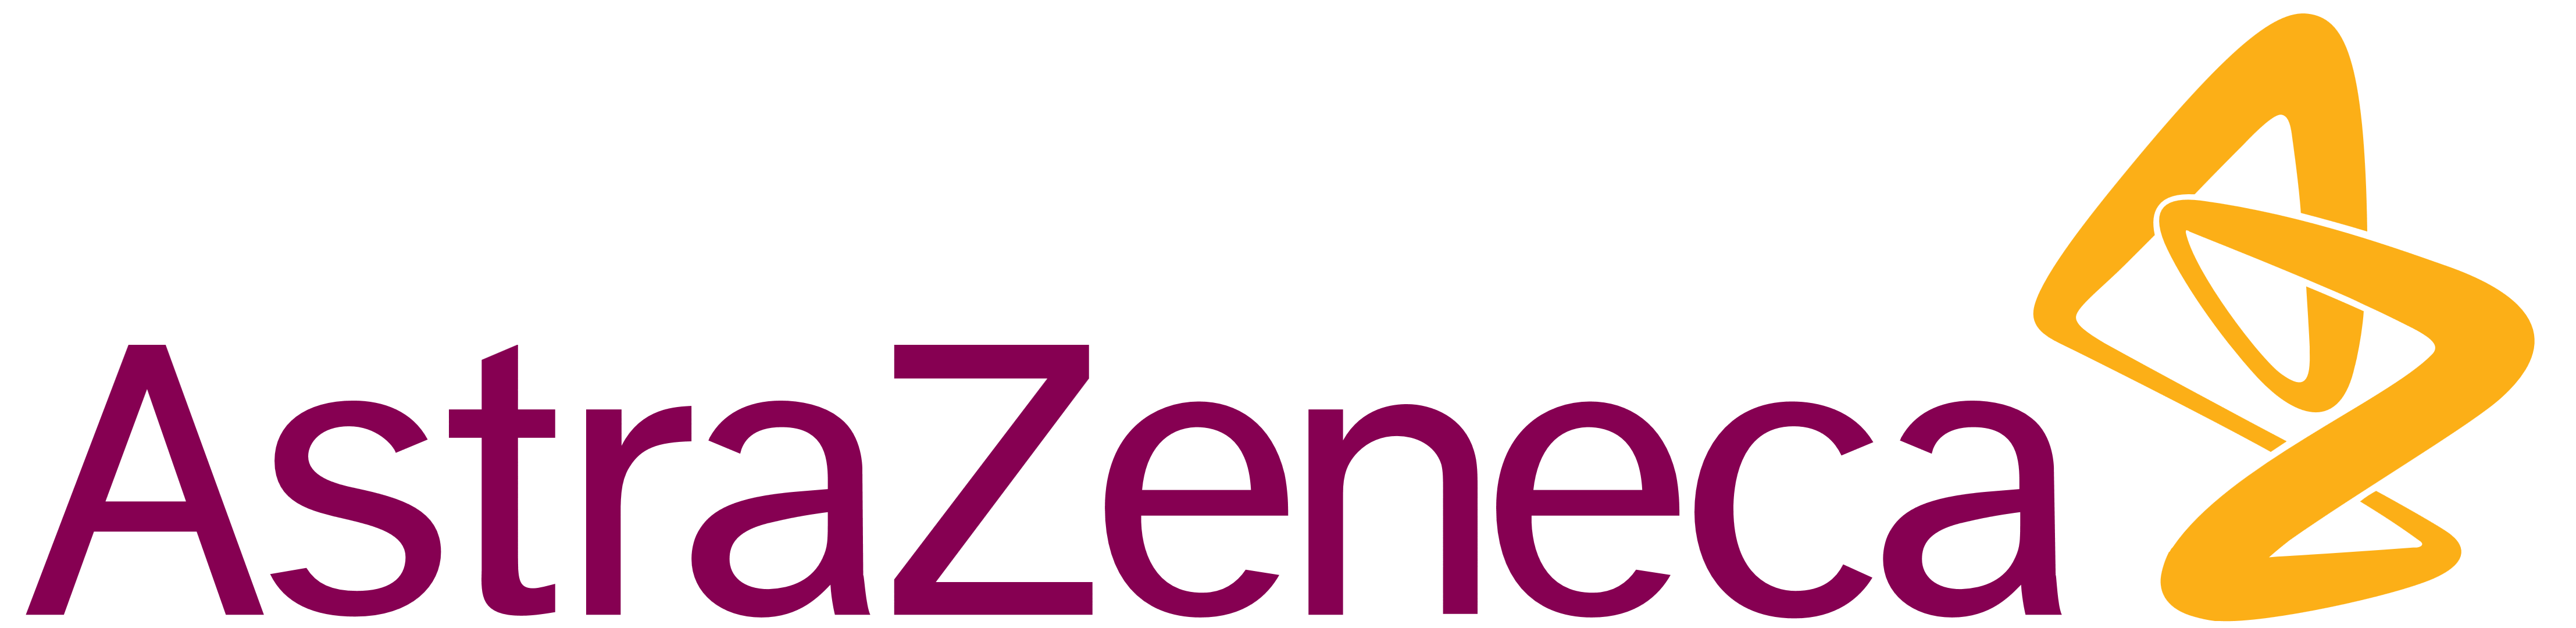 astrazeneca � logos download